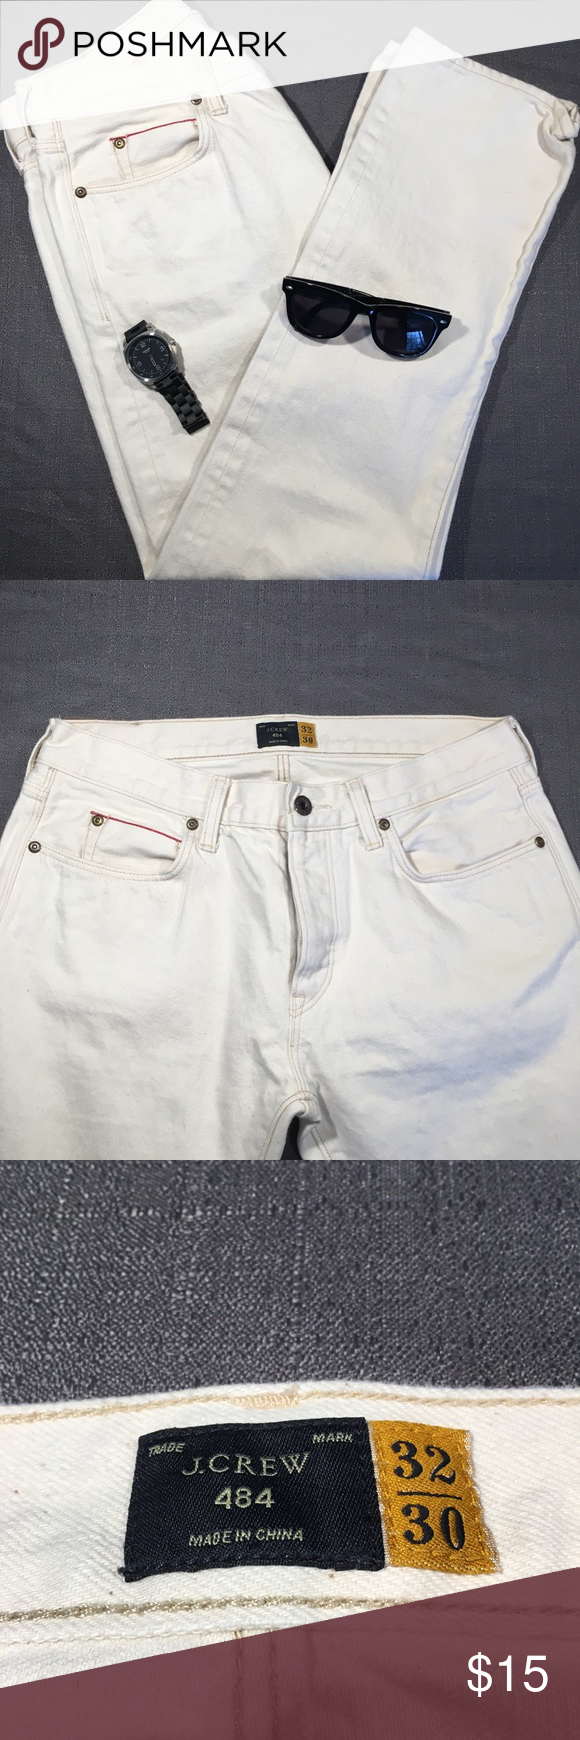 Men's Grunge White Denim J.Crew 484's - 32/30 Fresh and clean and perfect for any throwback outfit! Size 32/30 Grungey white denim  Great Condition  Smoke free home J. Crew Jeans Straight #throwbackoutfits Men's Grunge White Denim J.Crew 484's - 32/30 Fresh and clean and perfect for any throwback outfit! Size 32/30 Grungey white denim  Great Condition  Smoke free home J. Crew Jeans Straight #throwbackoutfits Men's Grunge White Denim J.Crew 484's - 32/30 Fresh and clean and perfect fo #throwbackoutfits